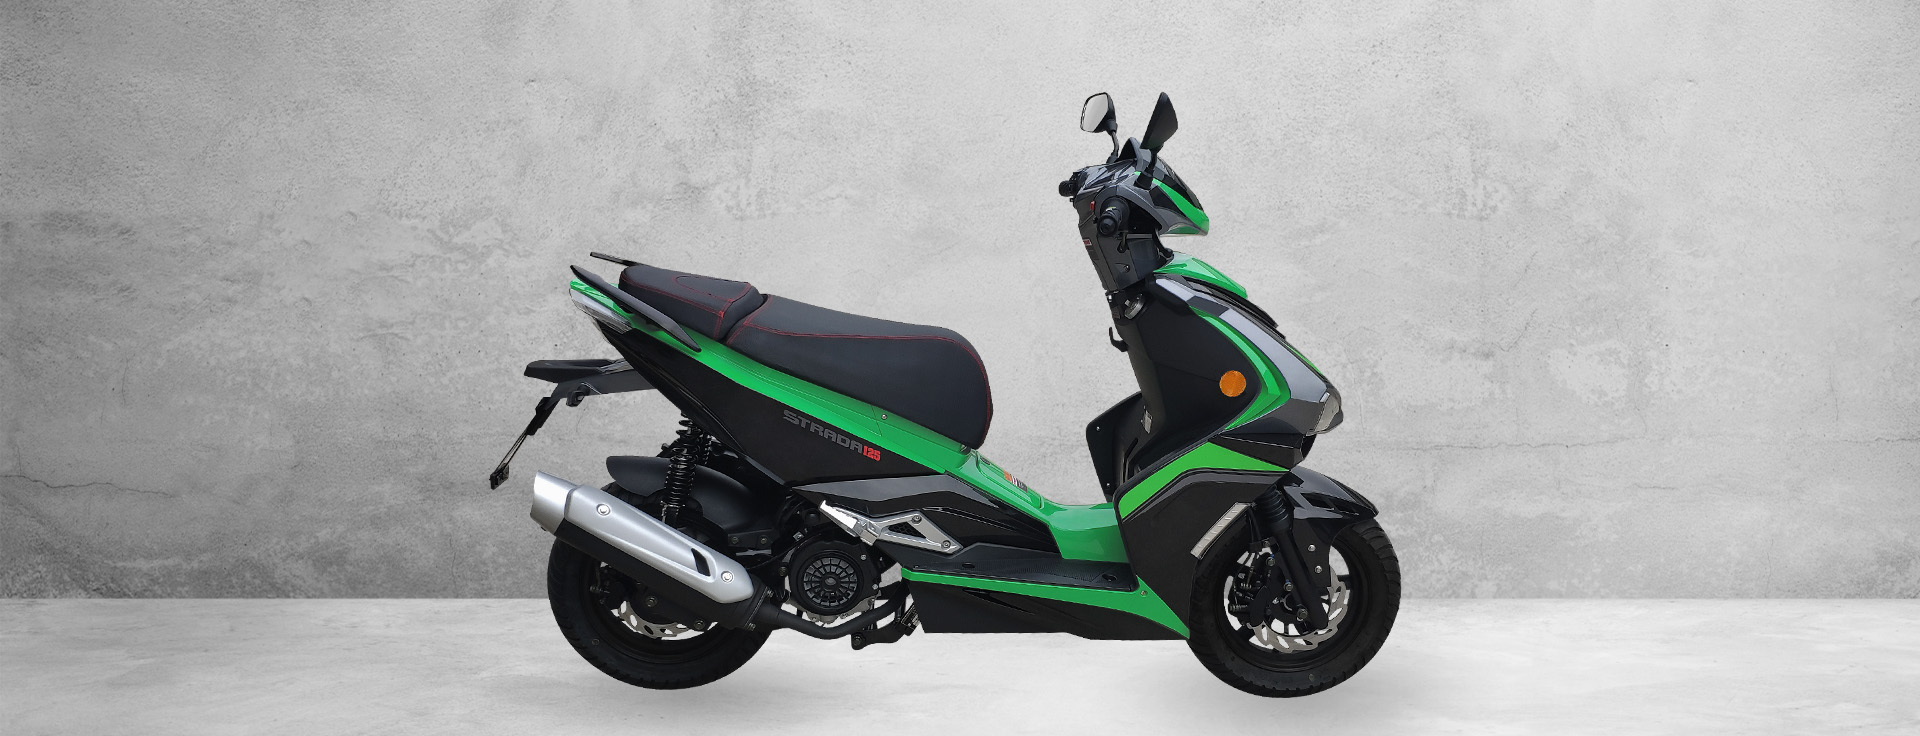 Novo Scooter do gás